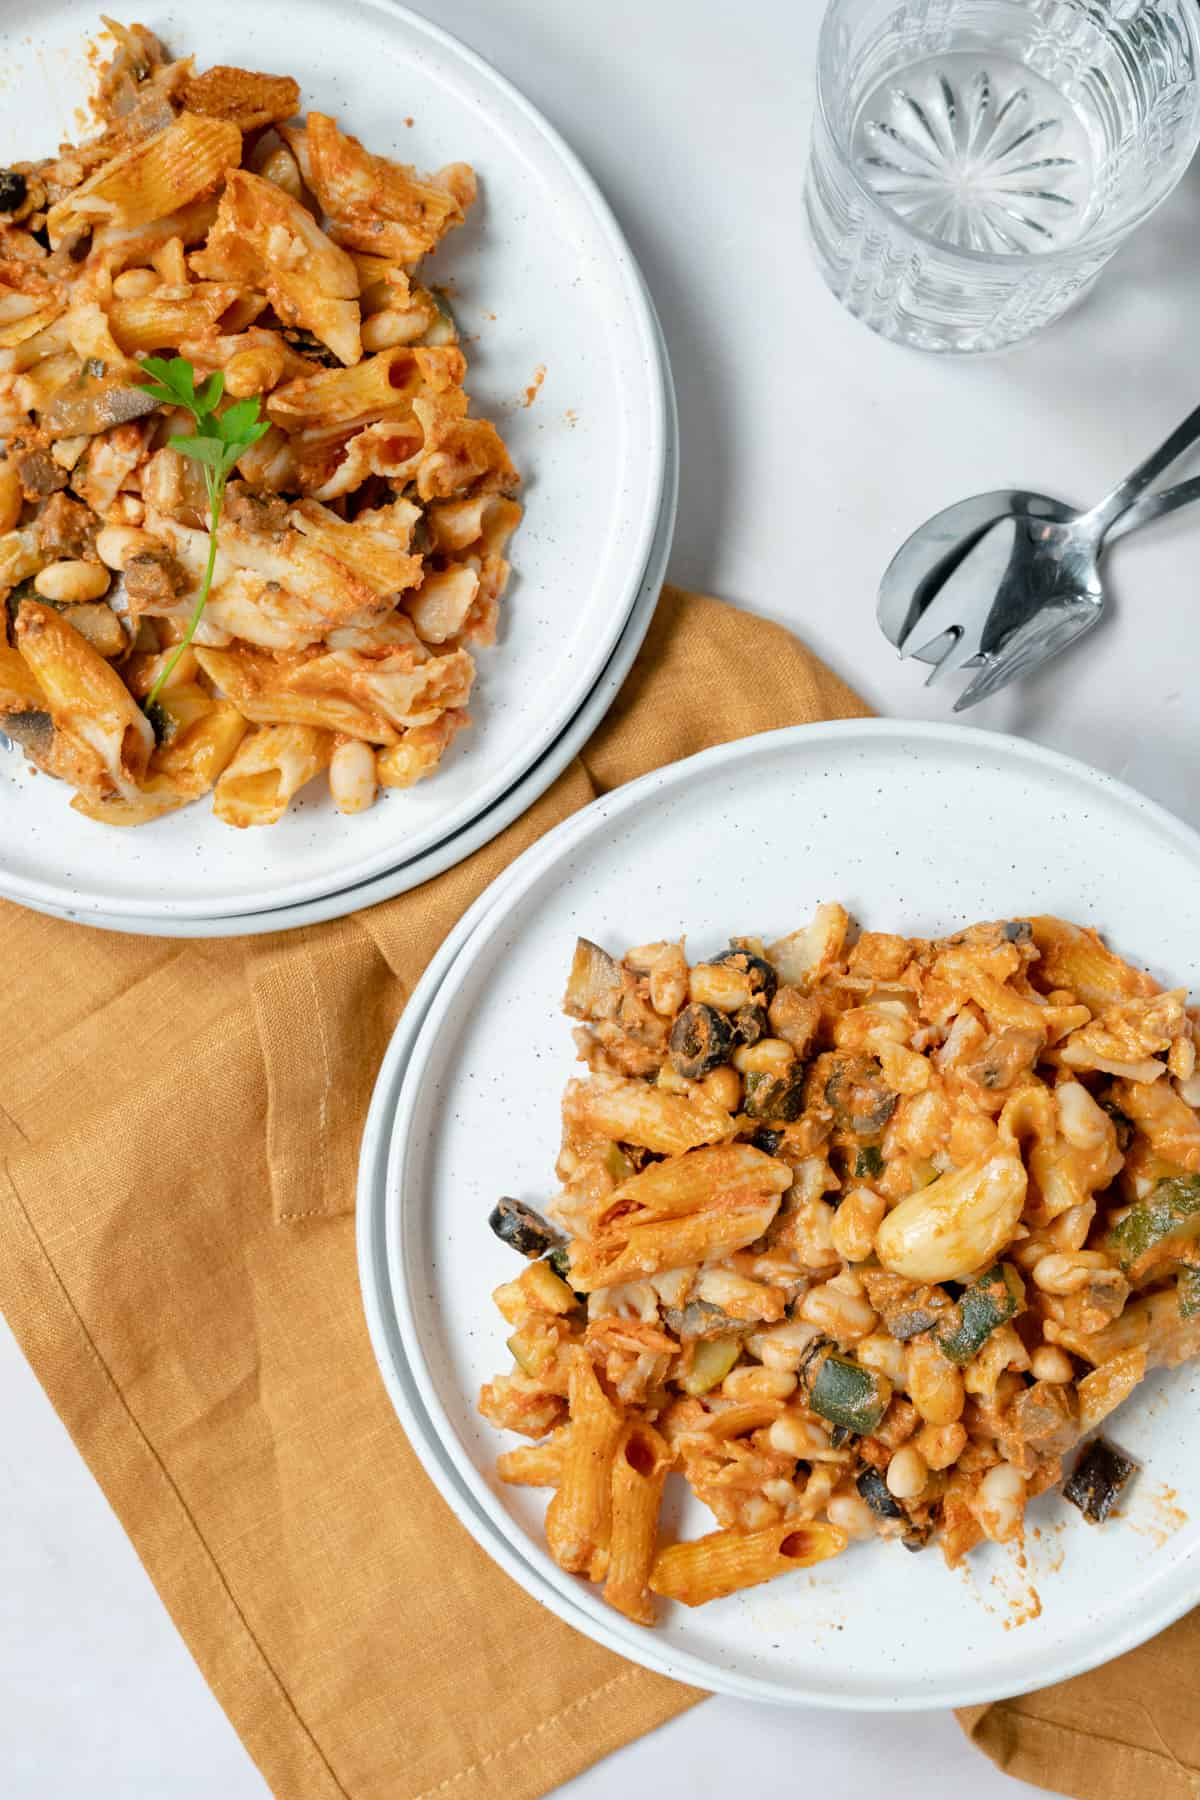 baked pasta in two white plates